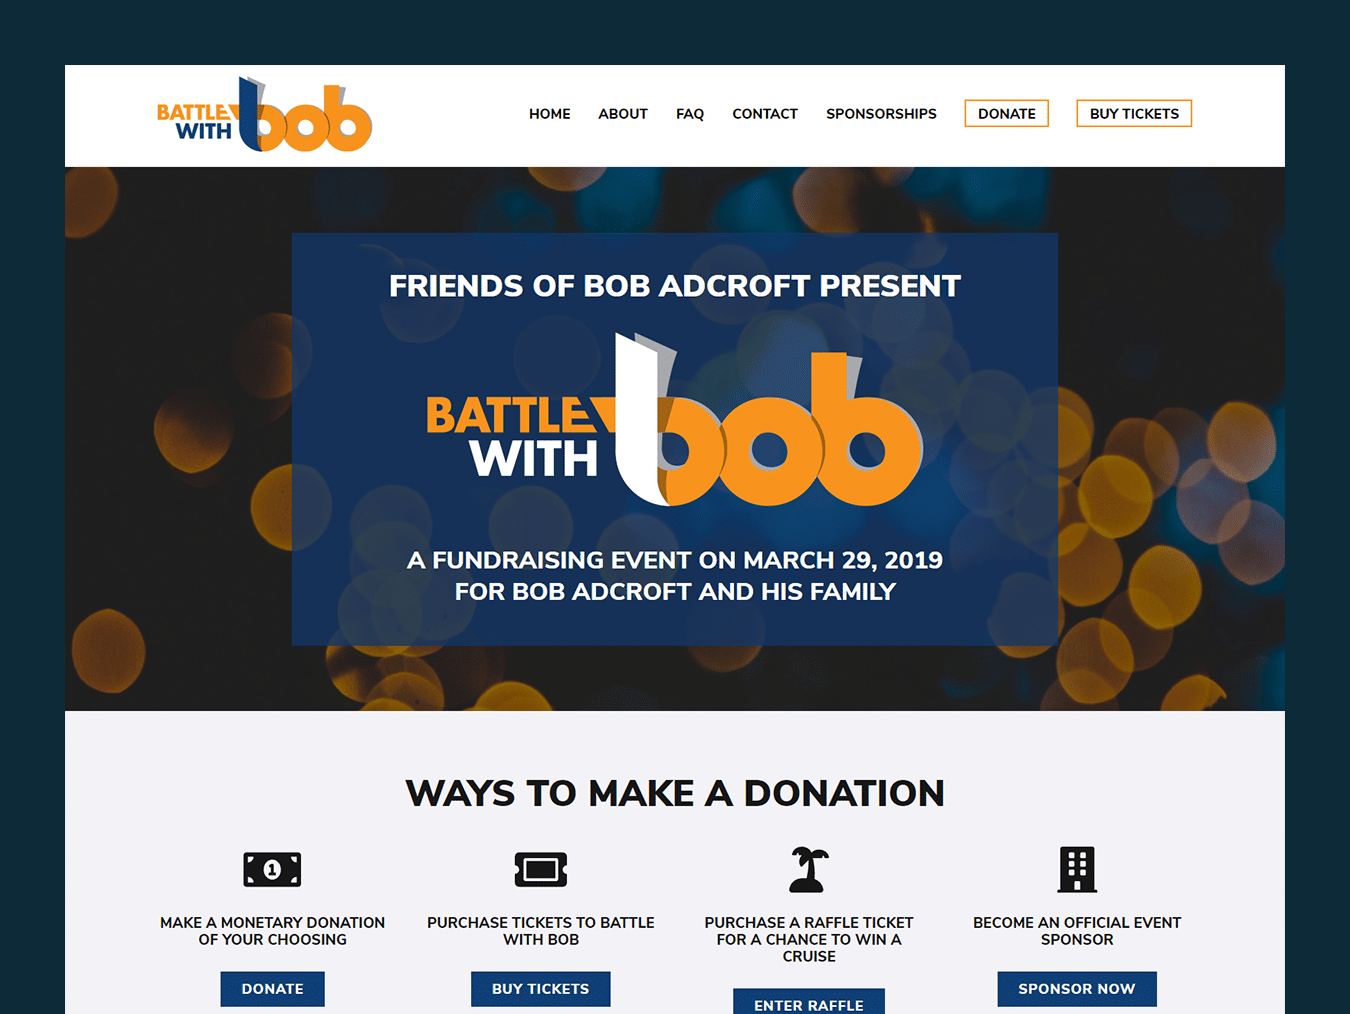 event-web-design-battle-with-bob-thumbnail-design